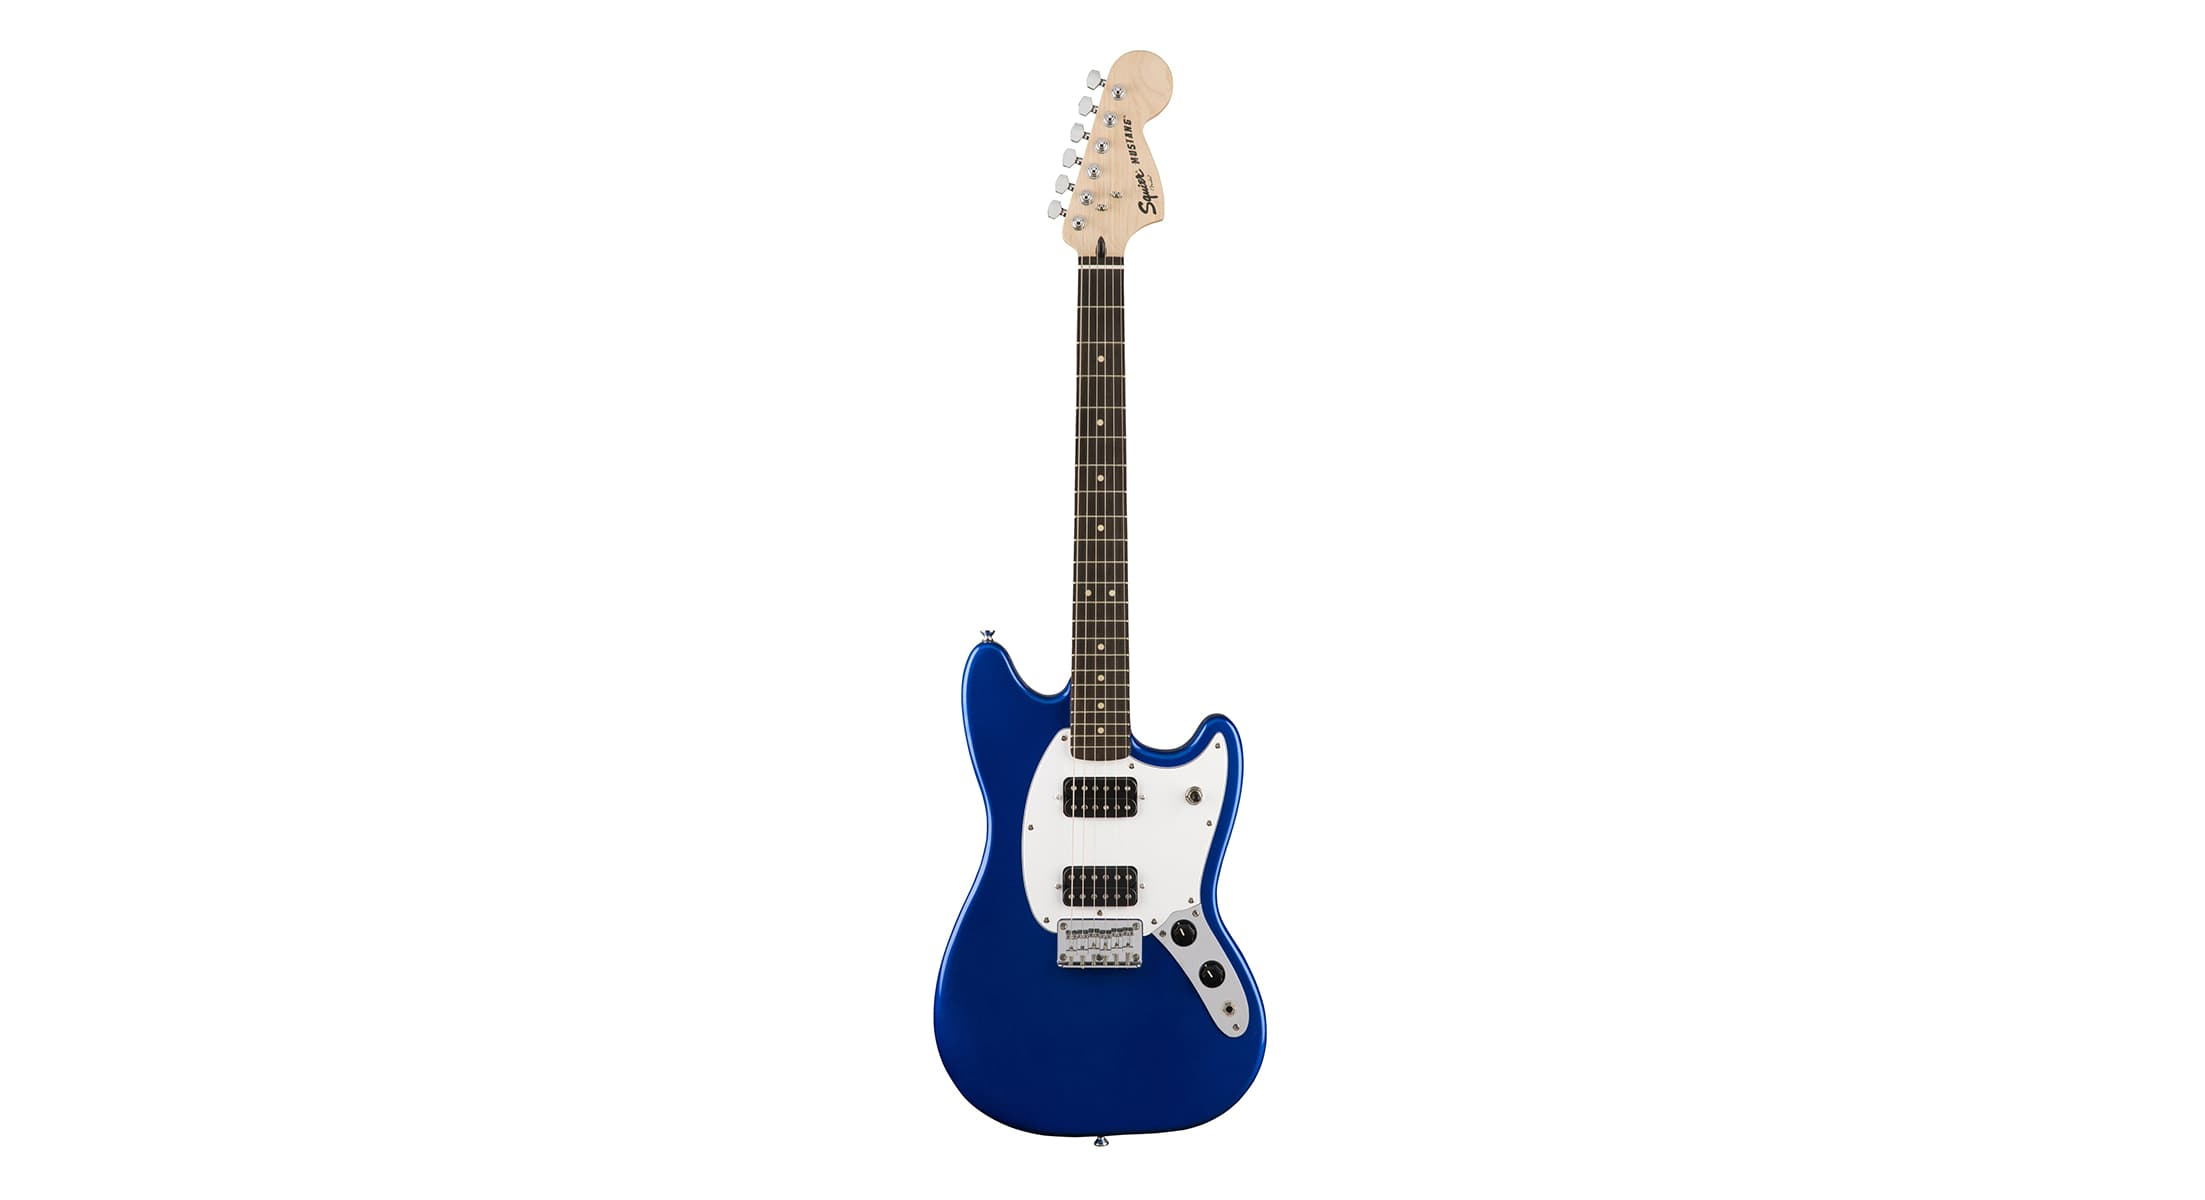 Электрогитара Squier Bullet Mustang HH IMPB